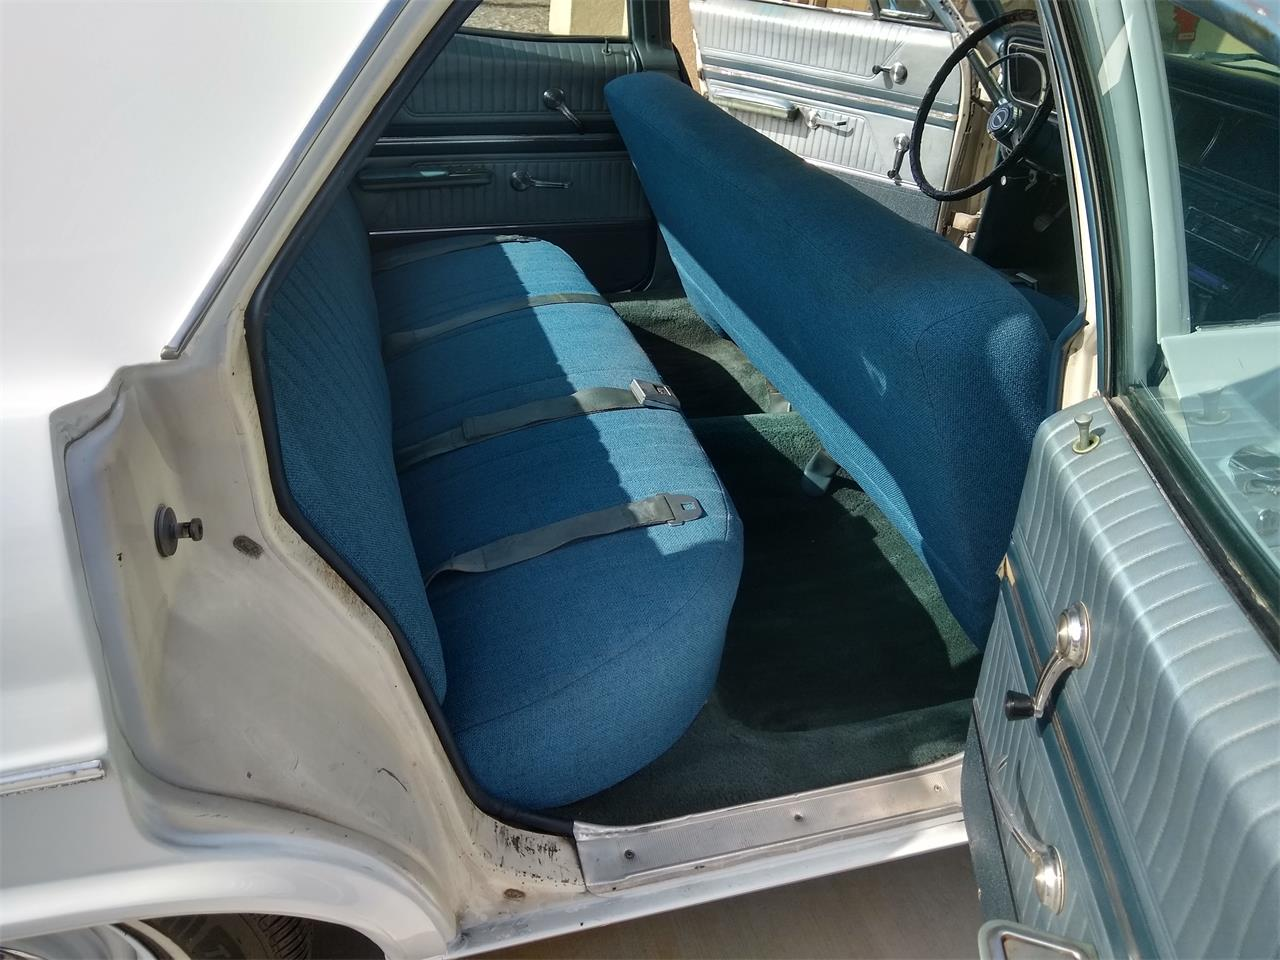 Large Picture of 1966 Bel Air located in Loma Linda  California - $25,000.00 - Q8ZE